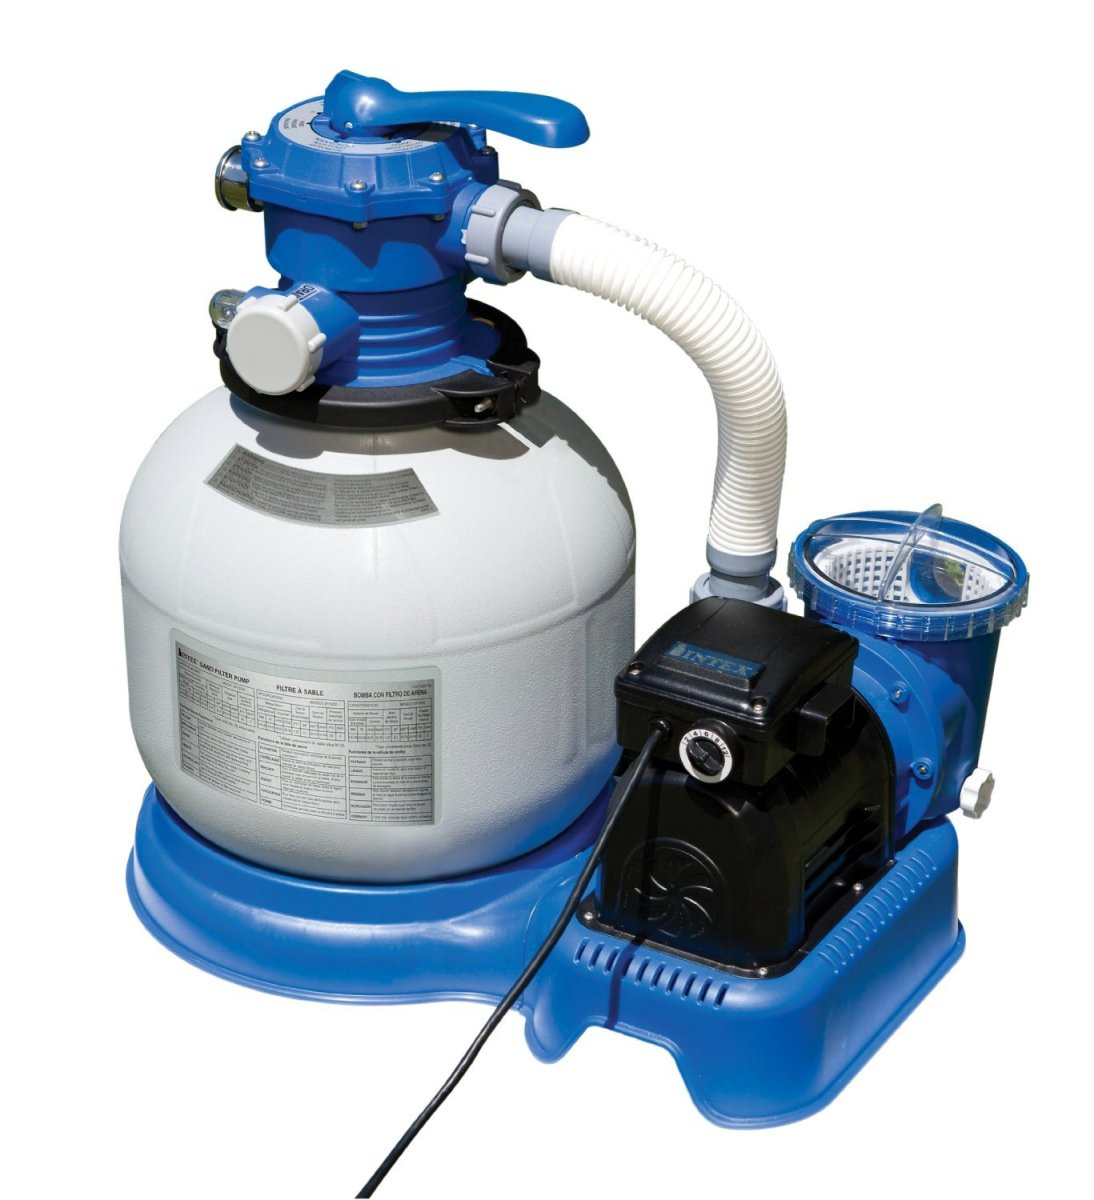 Intex above ground pool pumps best above ground pools for Swimming pool pumps for above ground pools